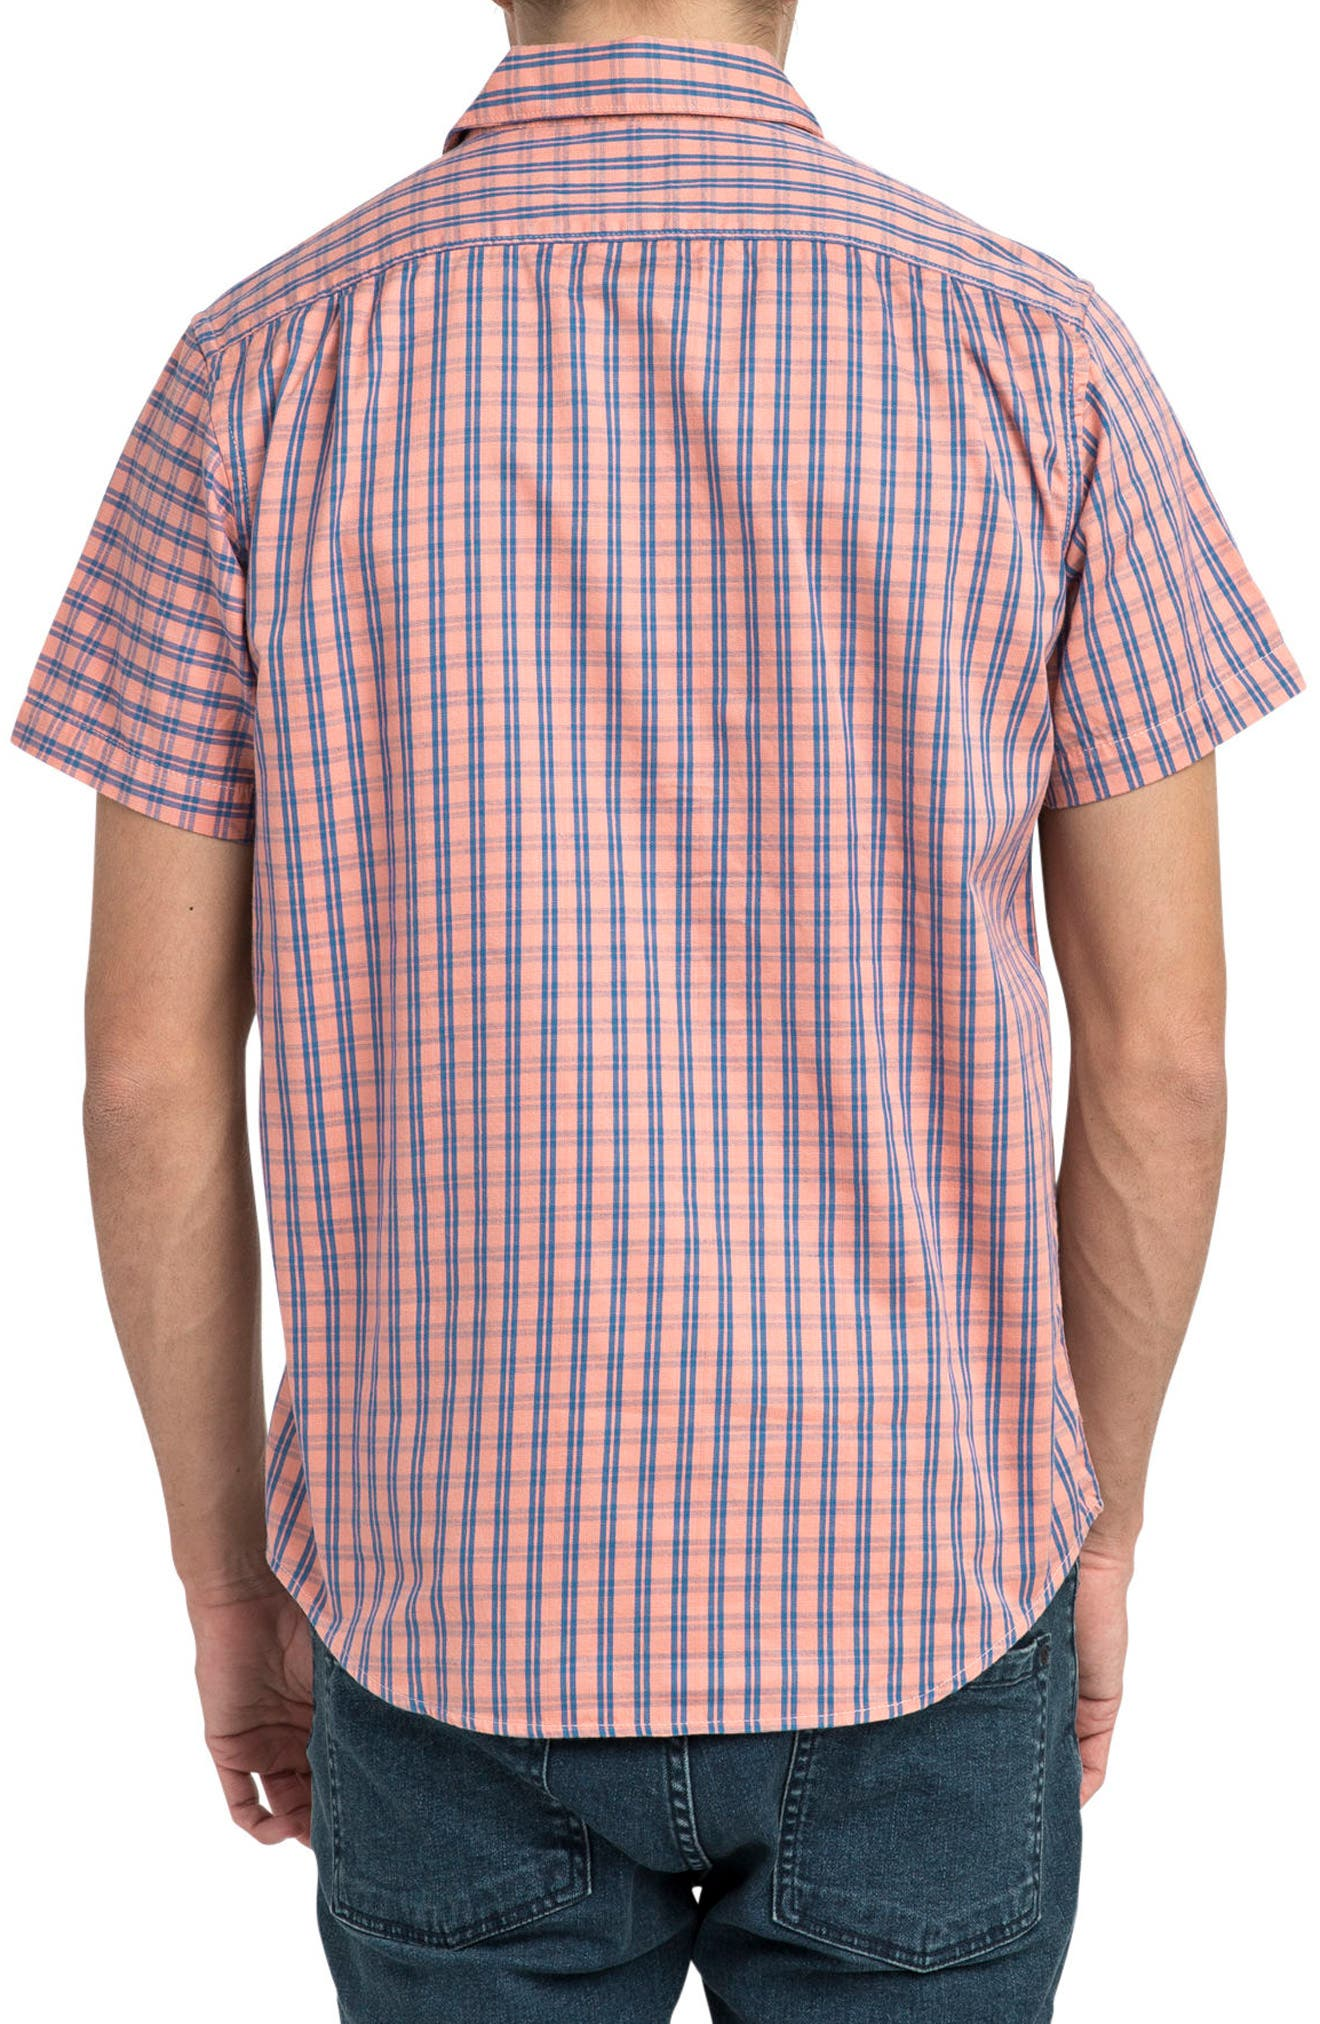 Delivery Woven Shirt,                             Alternate thumbnail 2, color,                             200